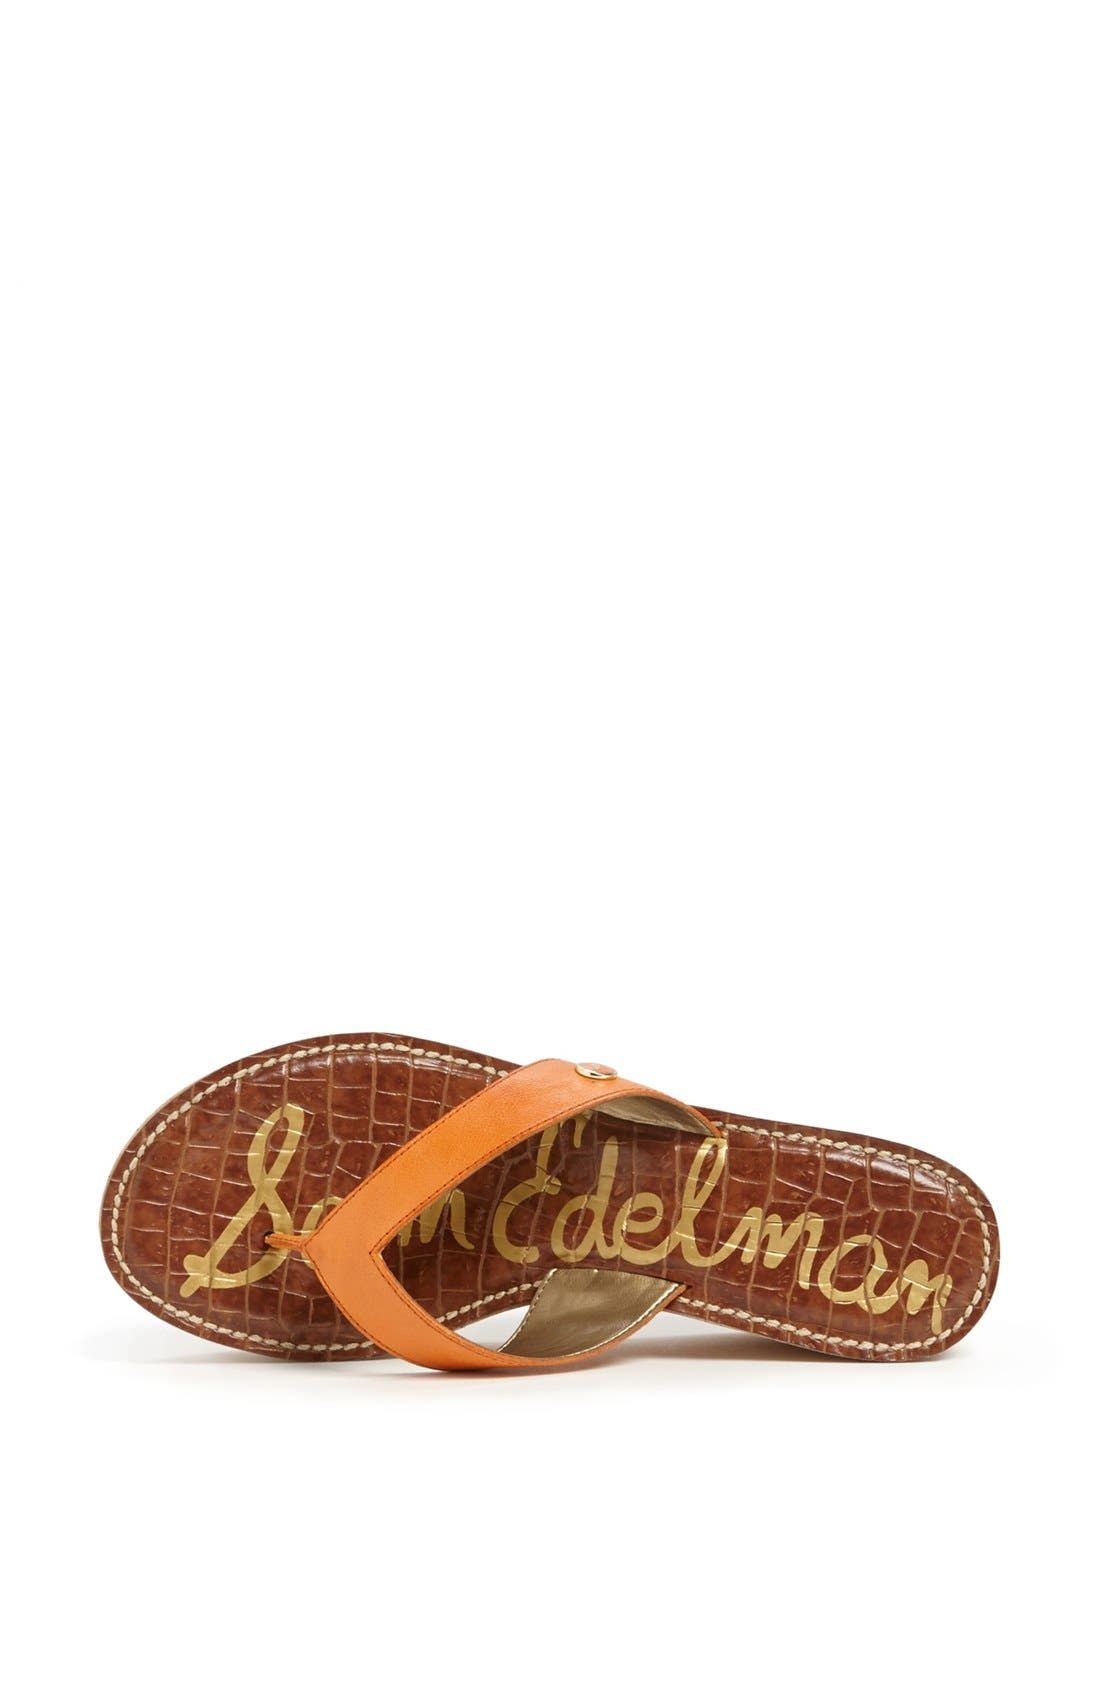 Alternate Image 3  - Sam Edelman 'Romy' Wedge Sandal (Women)